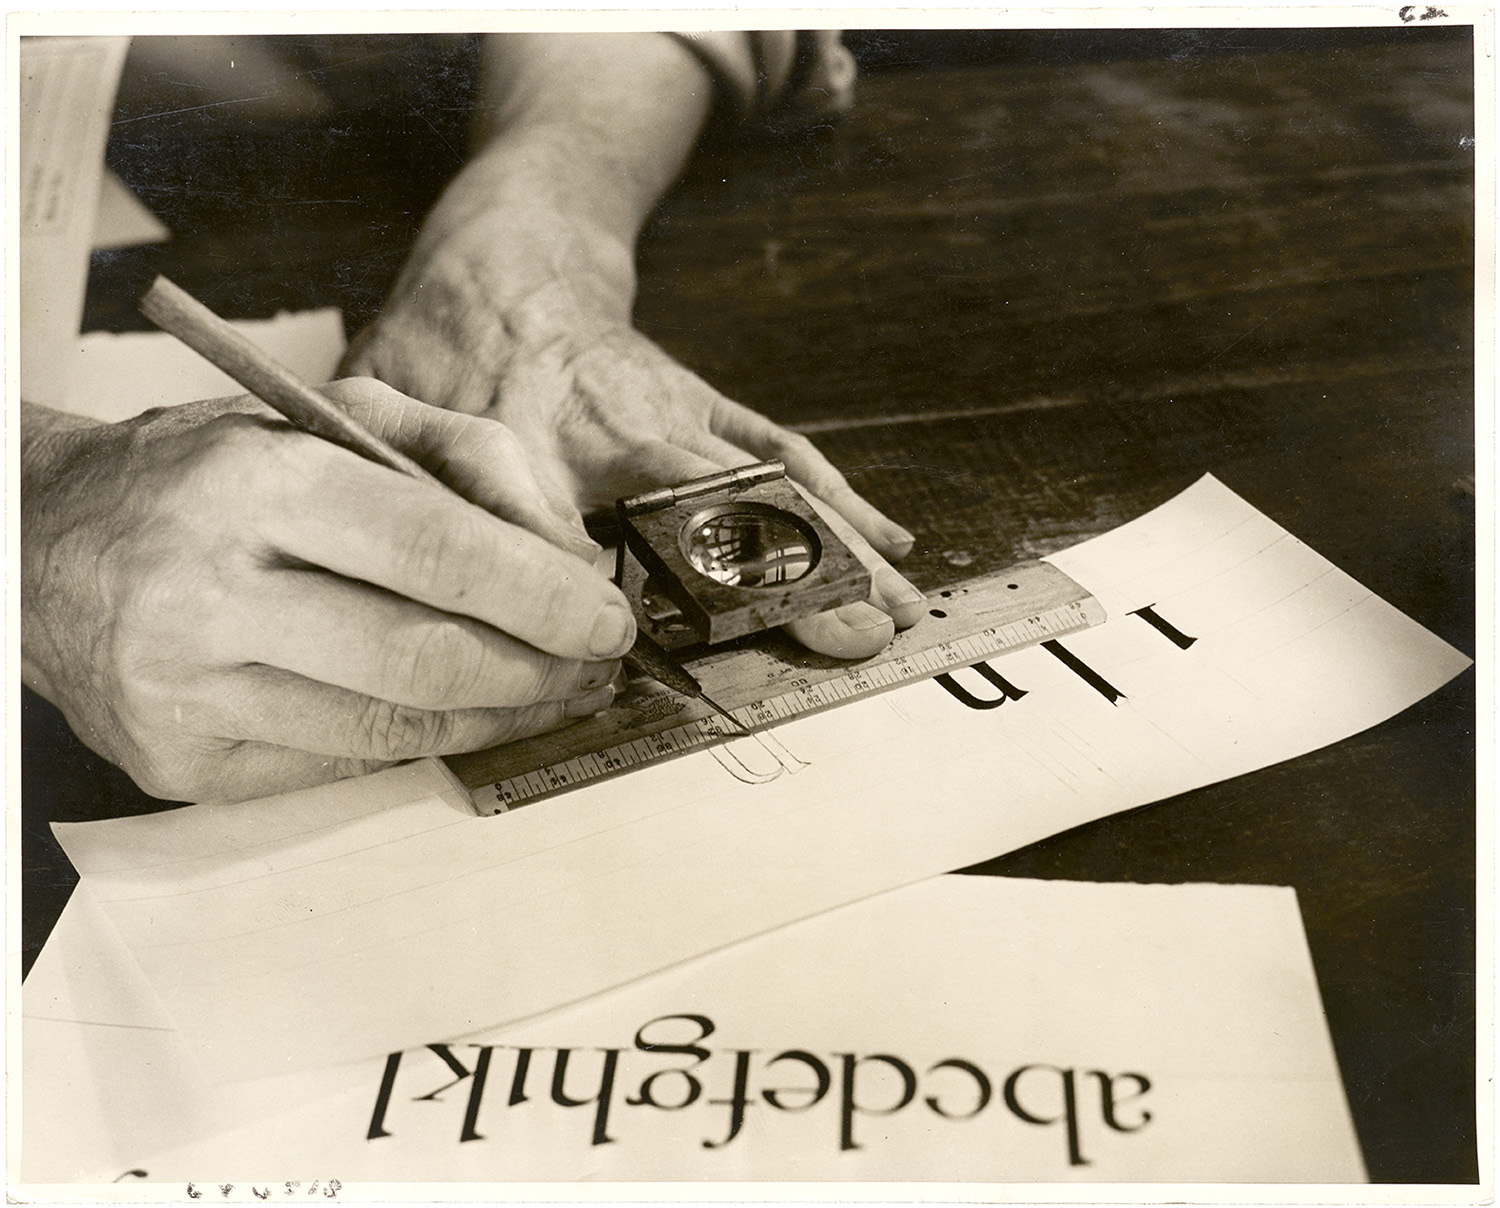 Dwiggins drawing letters using a loupe and a ruler